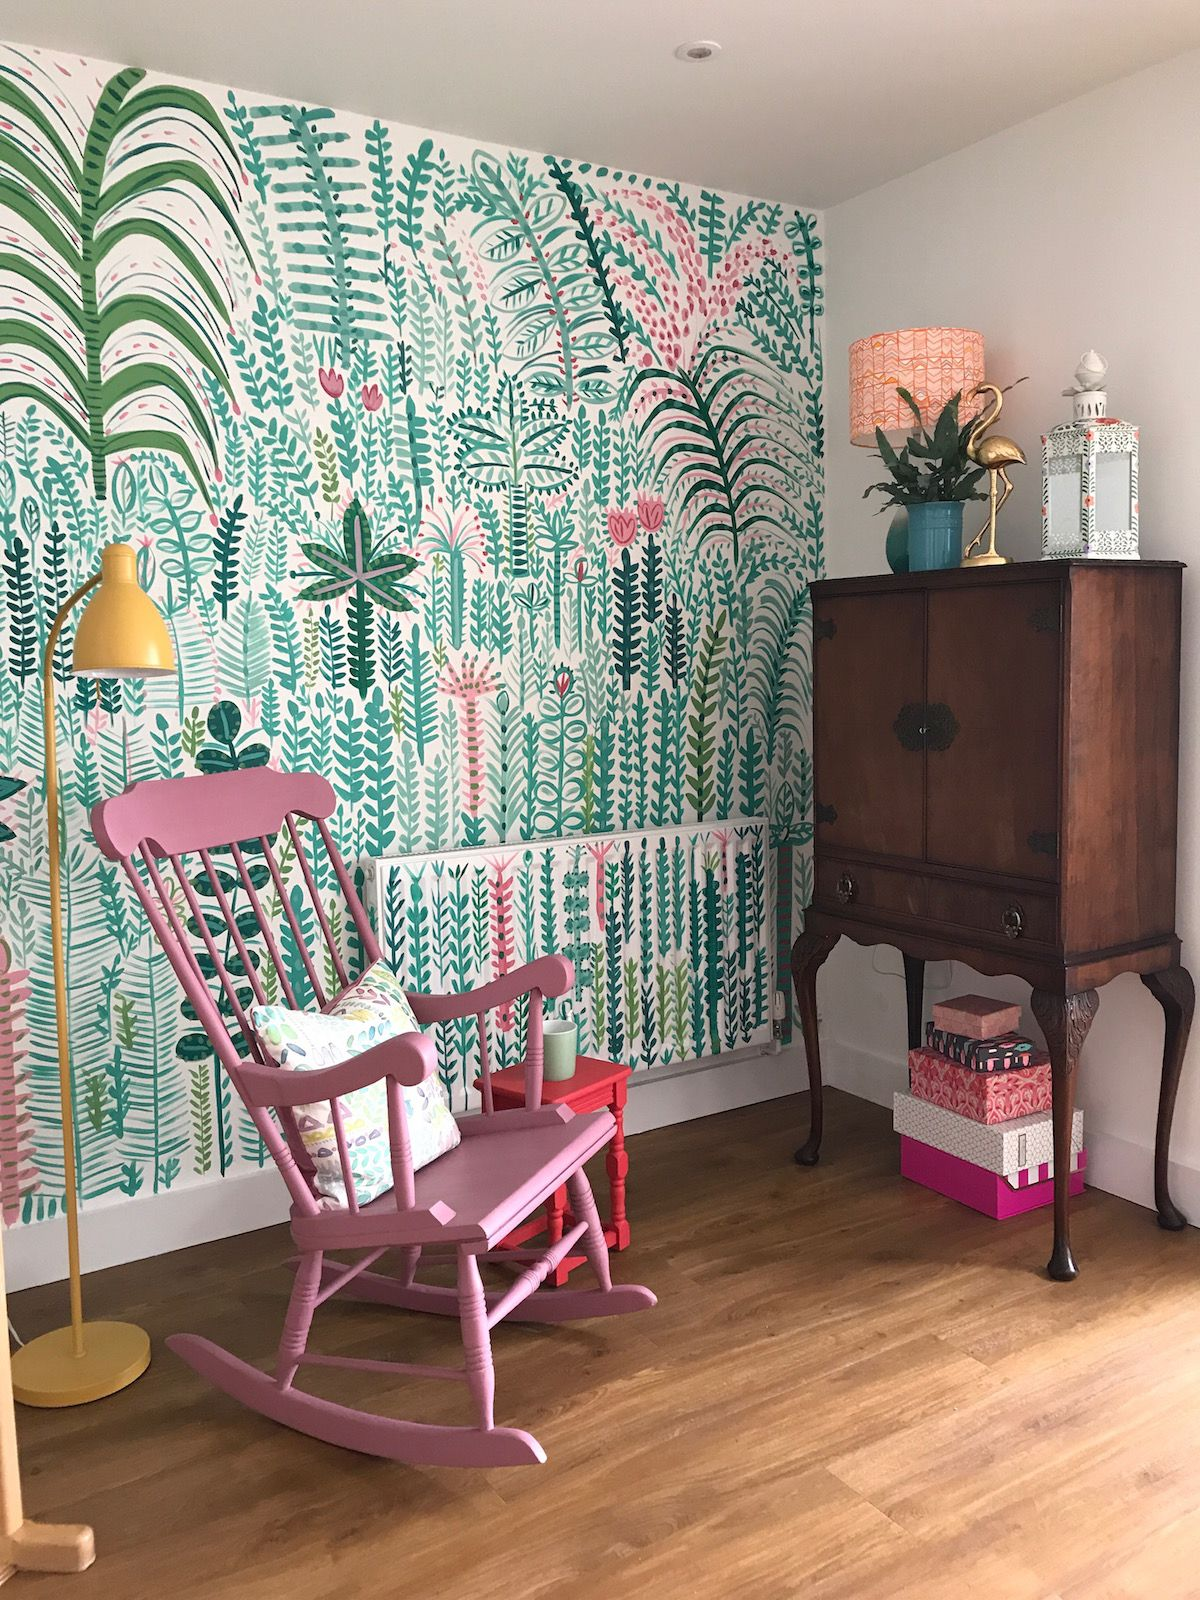 Wall mural with a tropical jungle print painted by designer Lucy Tiffney. part of an interior design by Sophie Robinson for DIY SOS